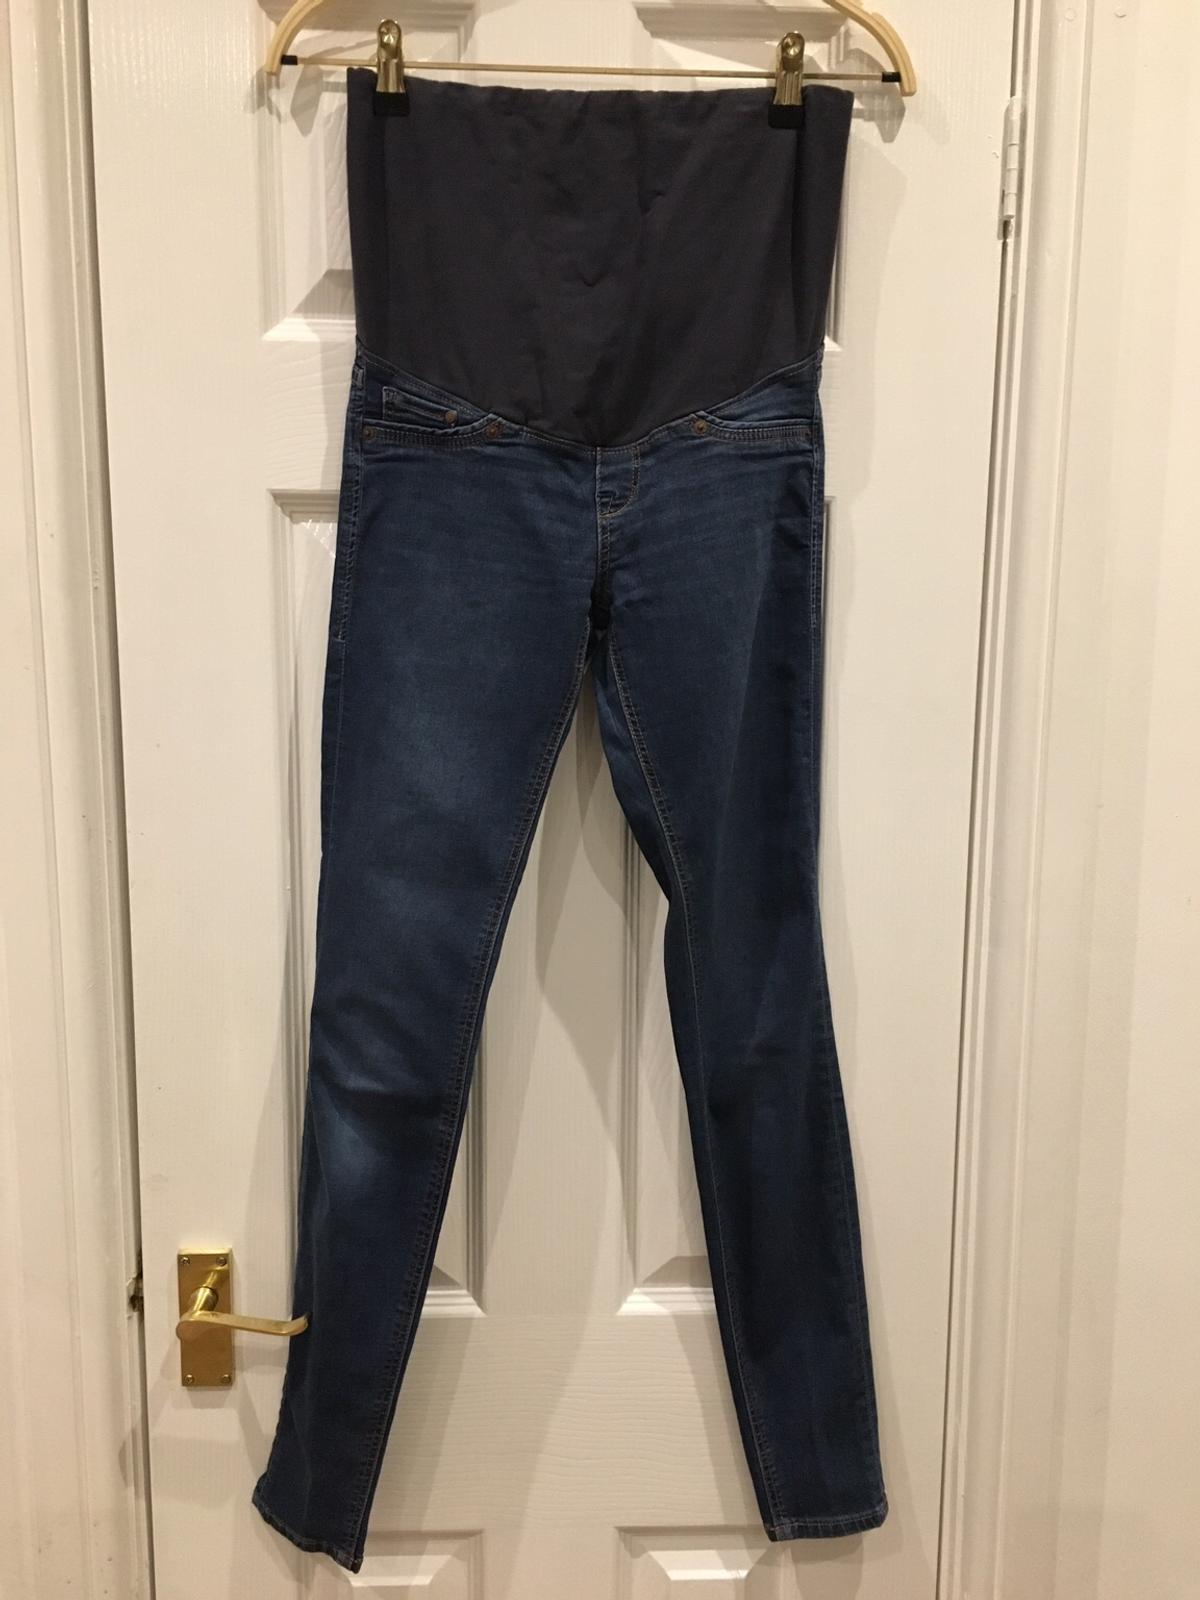 d90e5536230d5 H&M mama super skinny high rib jeans size 6-8 in B92 Solihull for ...